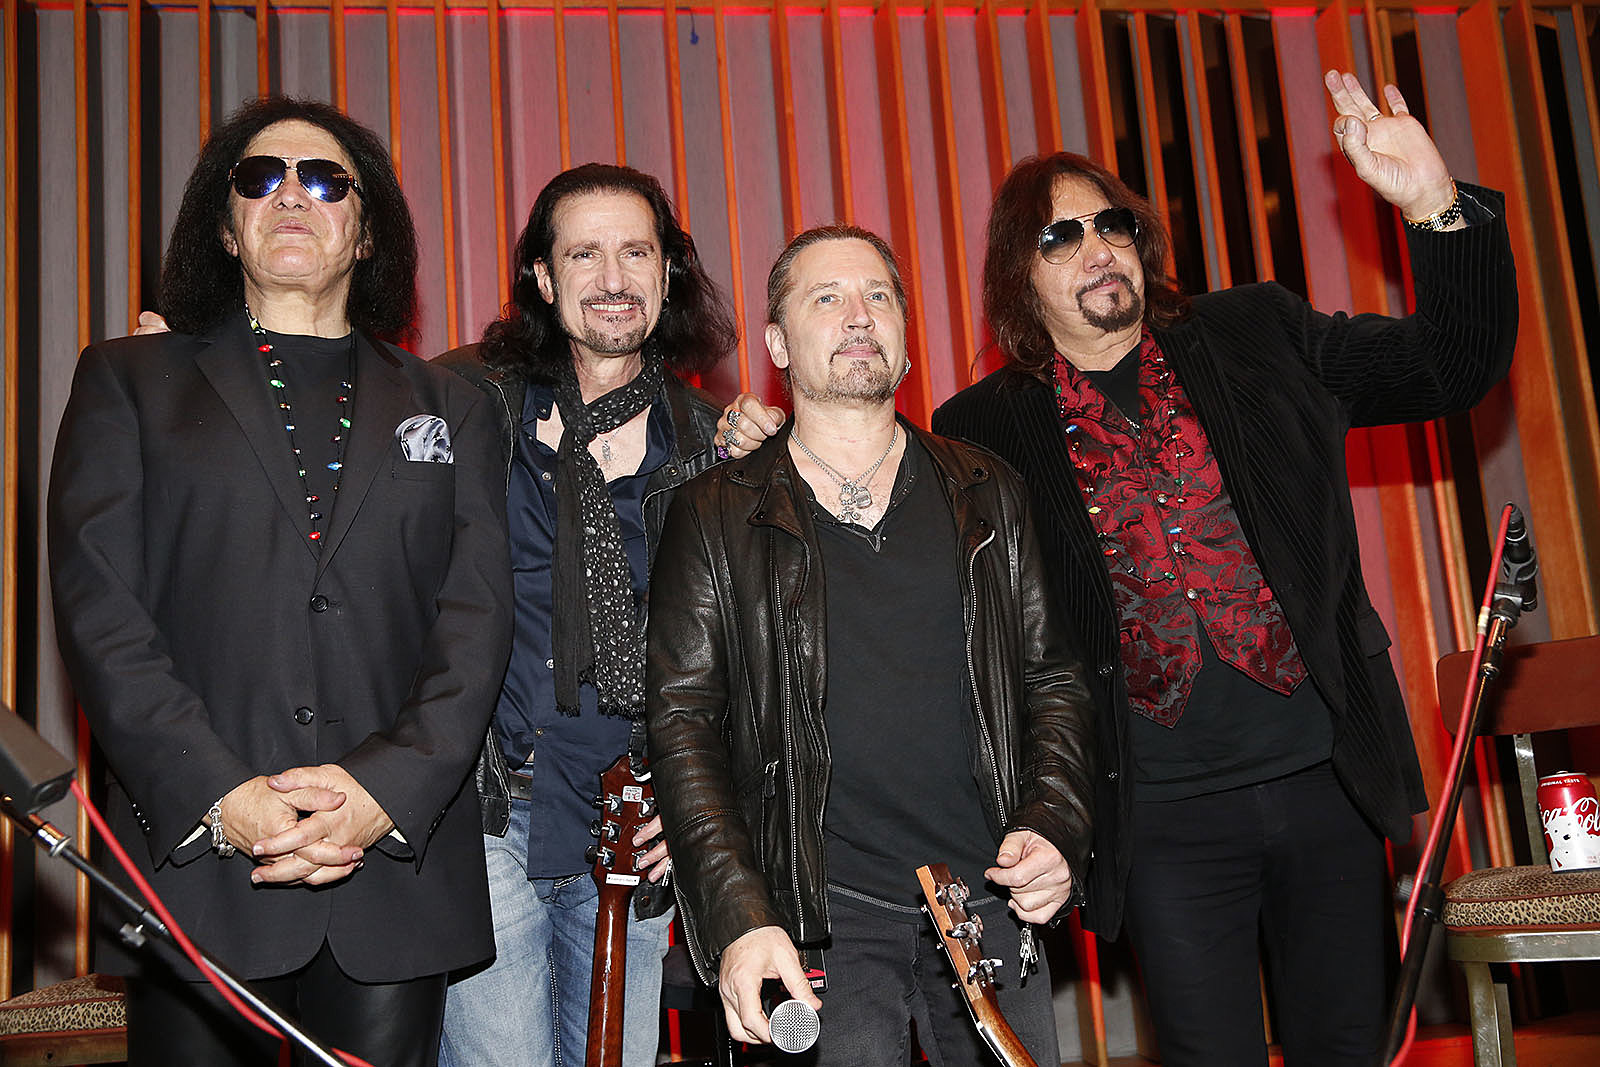 VIDEO: Gene, Ace, Bruce and Eric Singer @ Gene Vault Experience